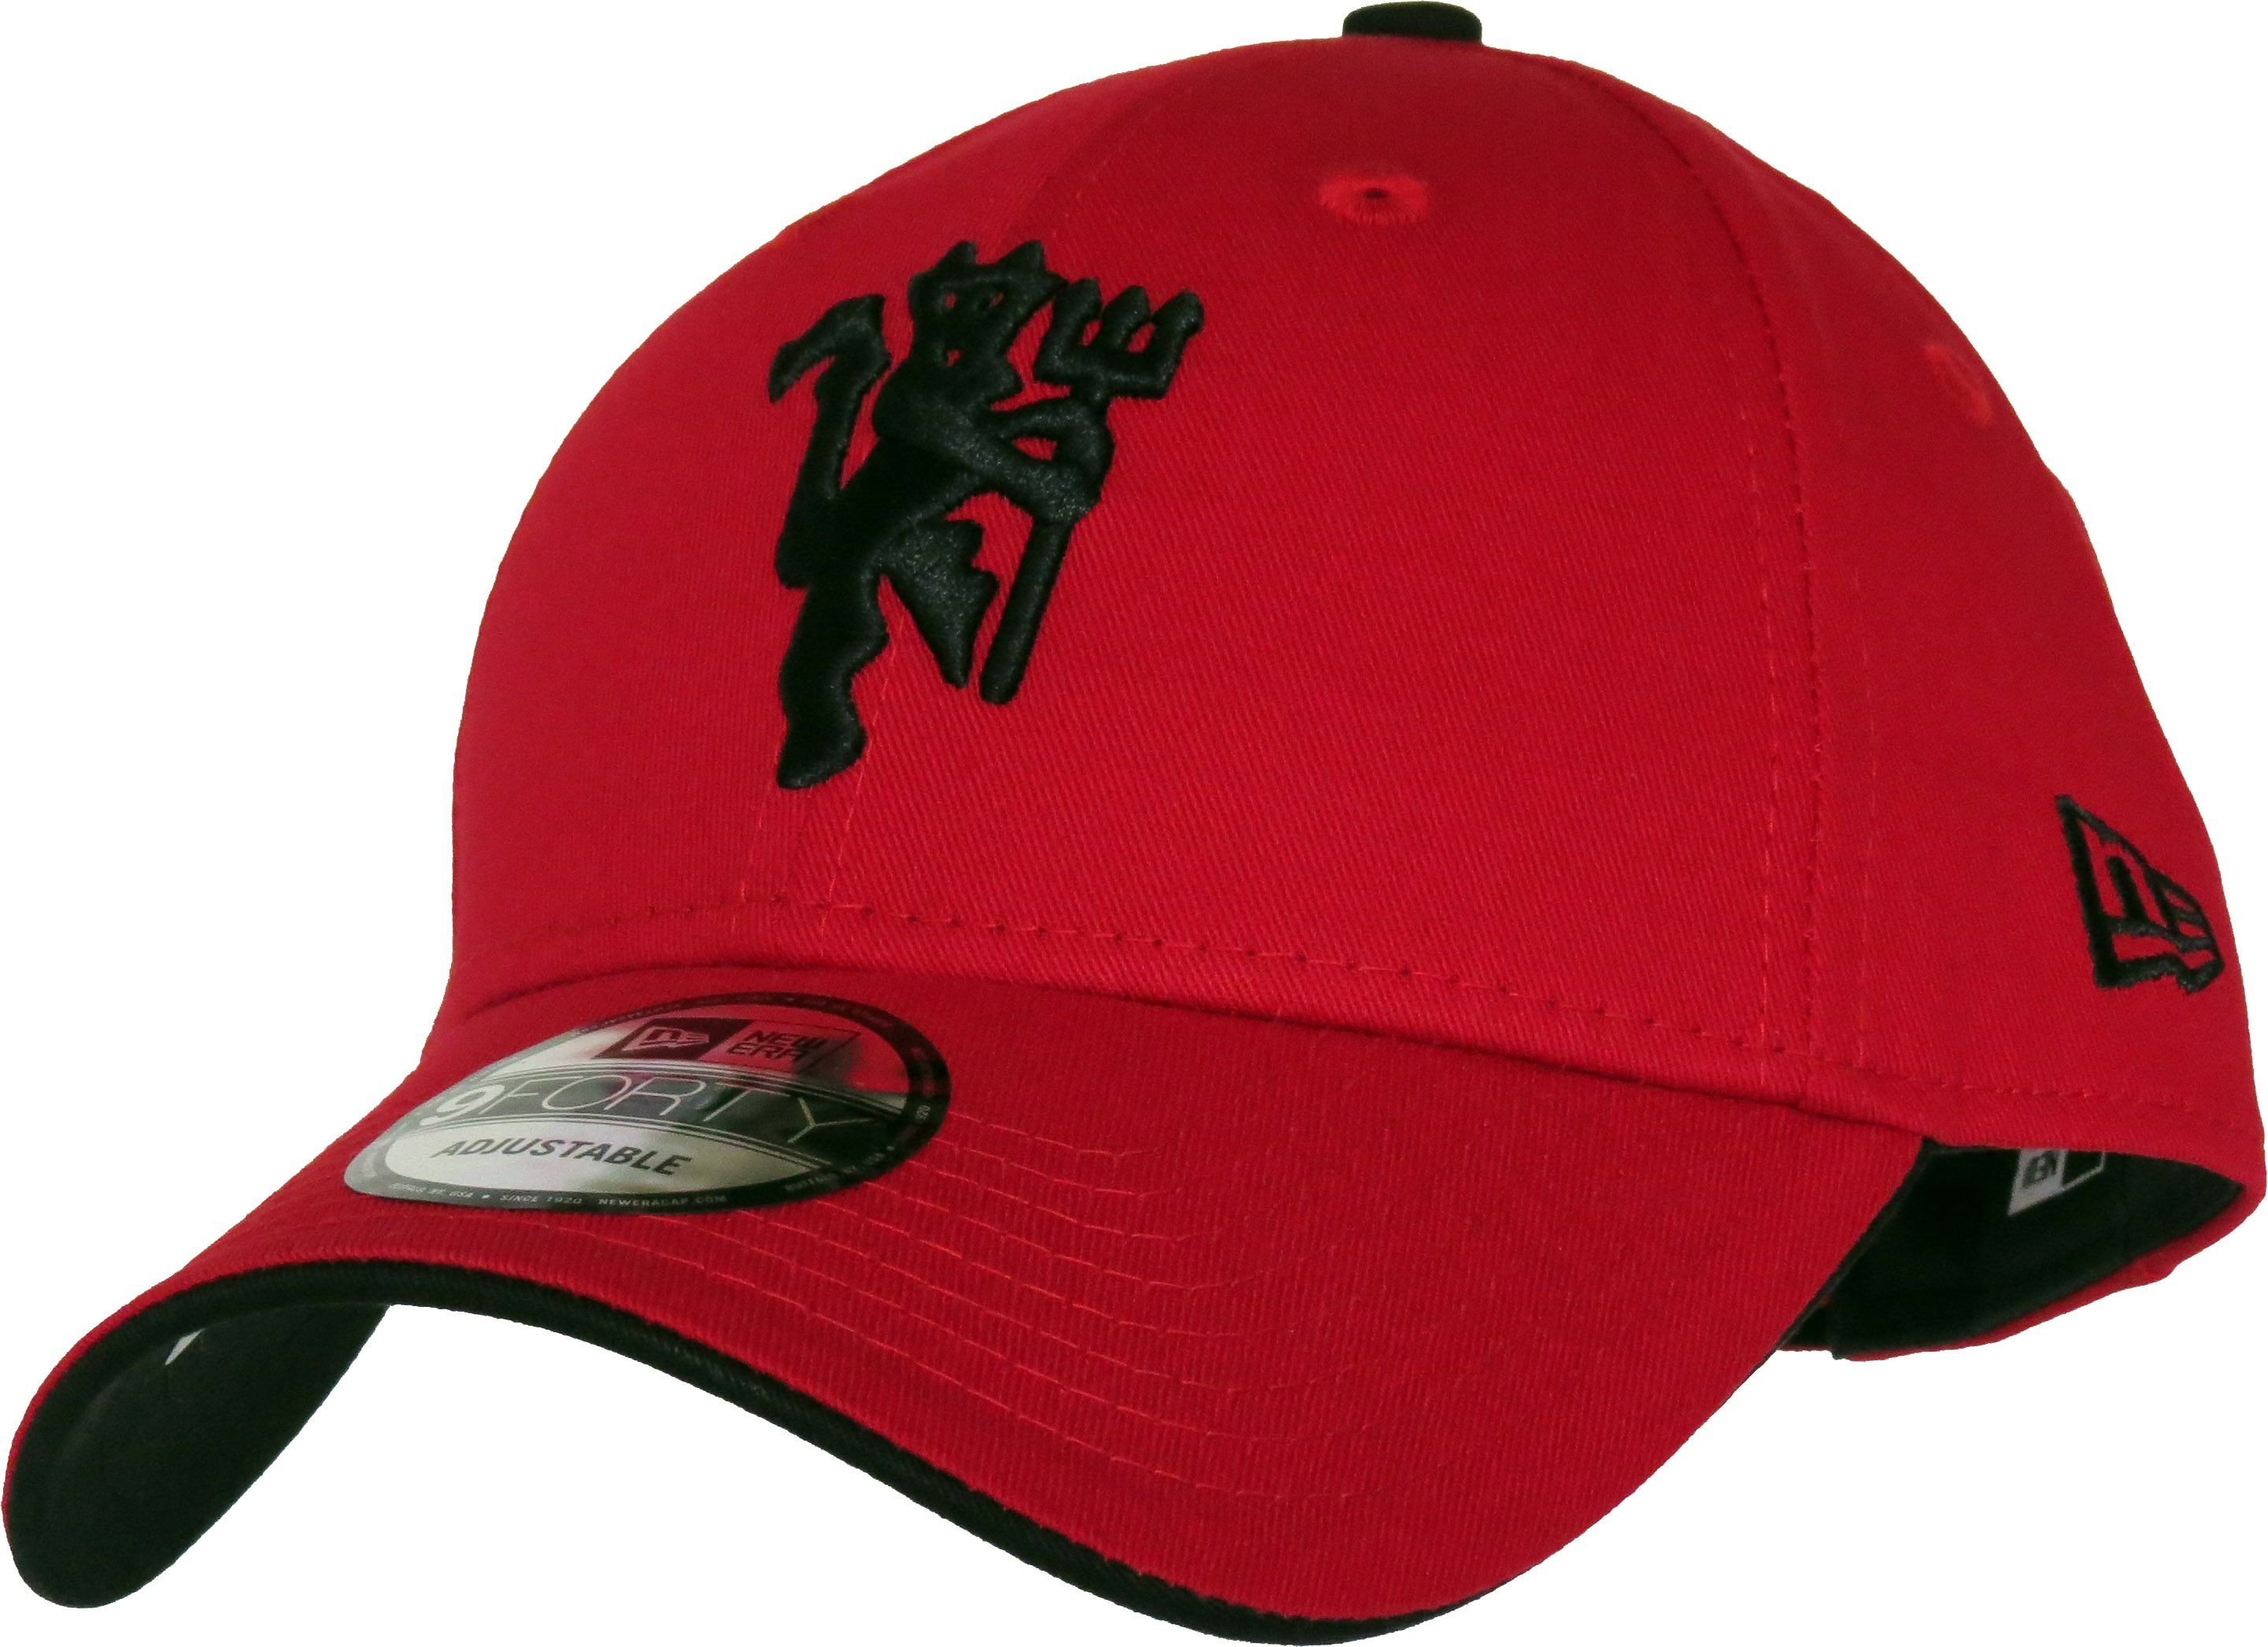 New Era 940 Manchester United Ajustable Cap Red b9262ca59e0